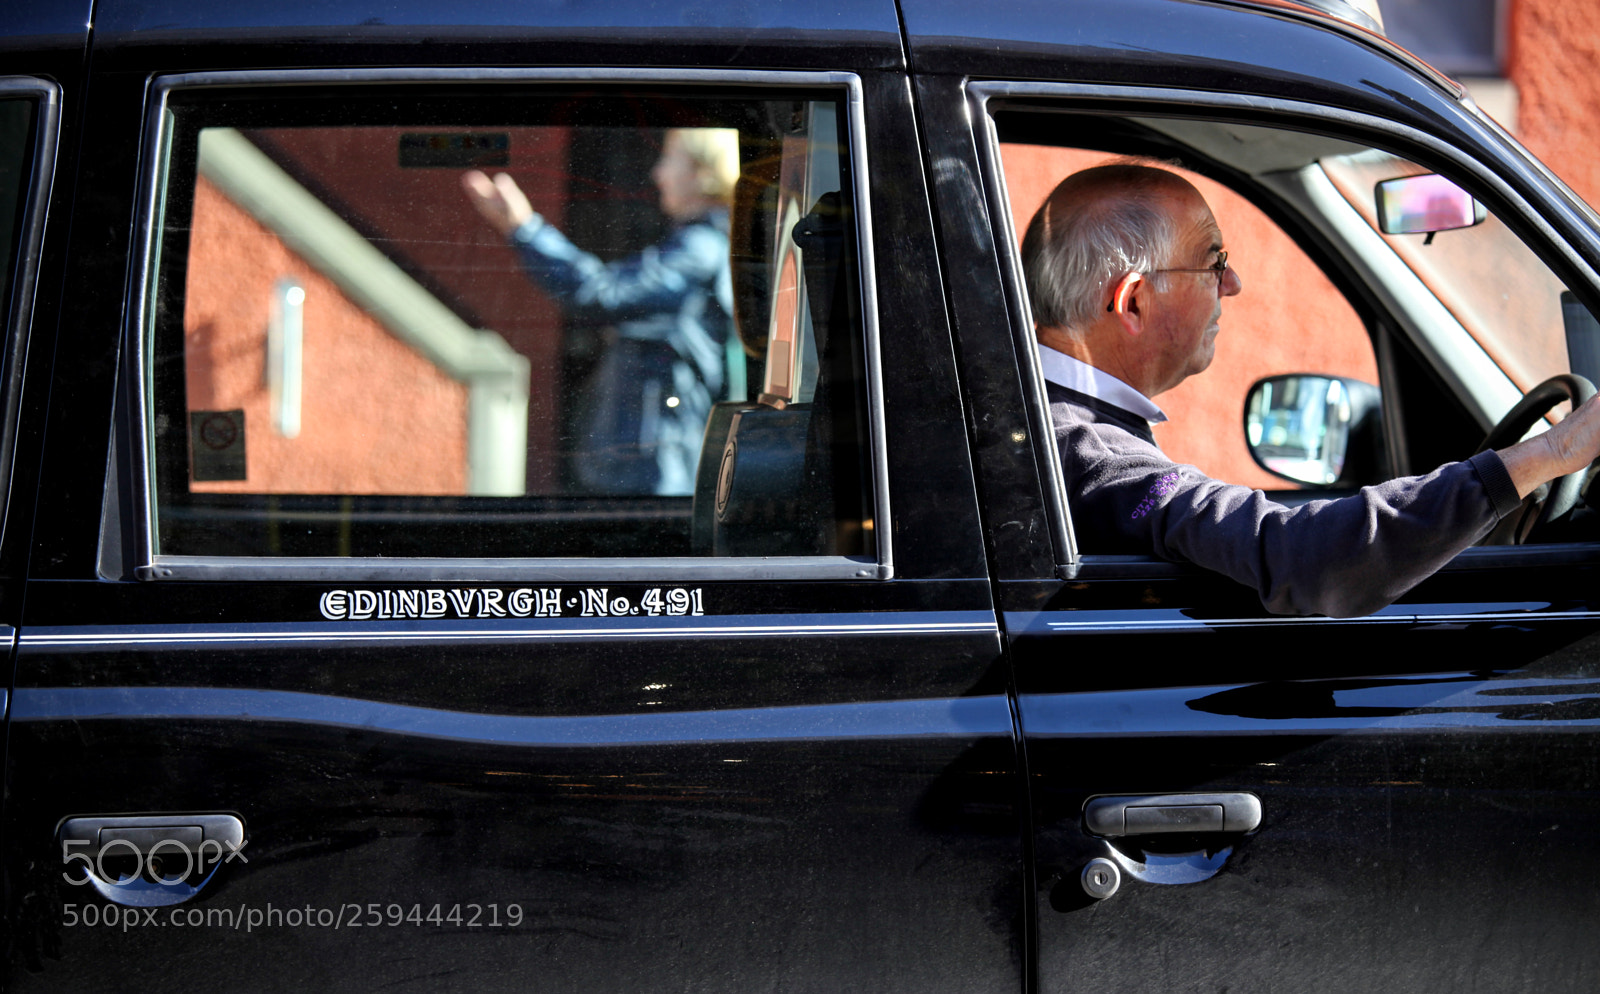 Edinburg cab, Canon EOS 5D MARK II, Canon EF 70-200mm f/4L IS